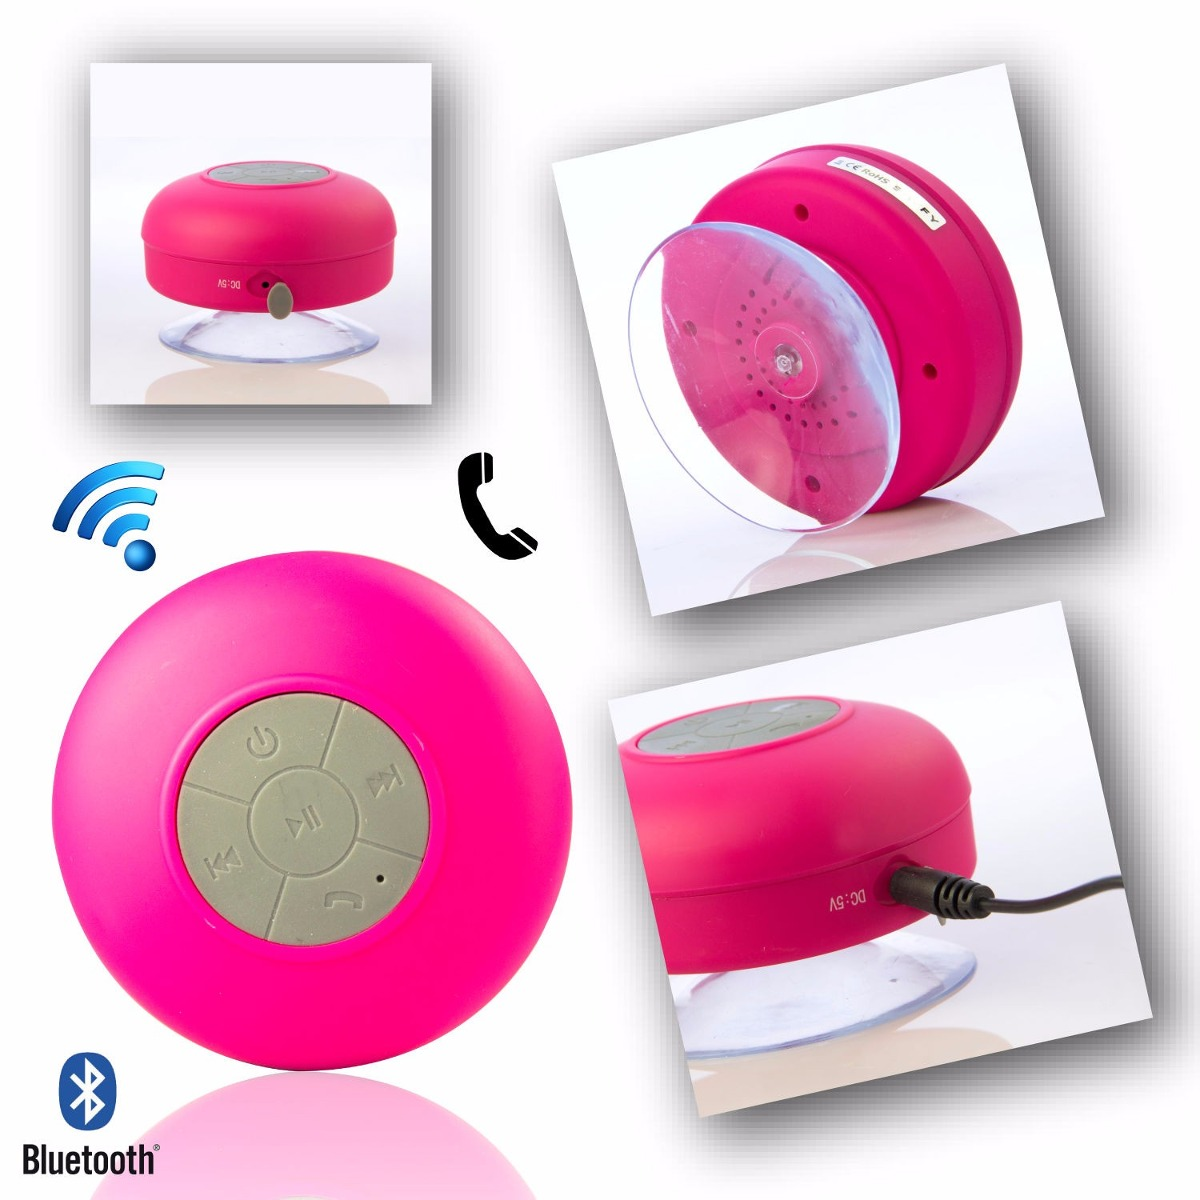 Manos Libres Bluetooth Amazon Mini Parlante Bluetooth Redondo Para Ducha En Varios